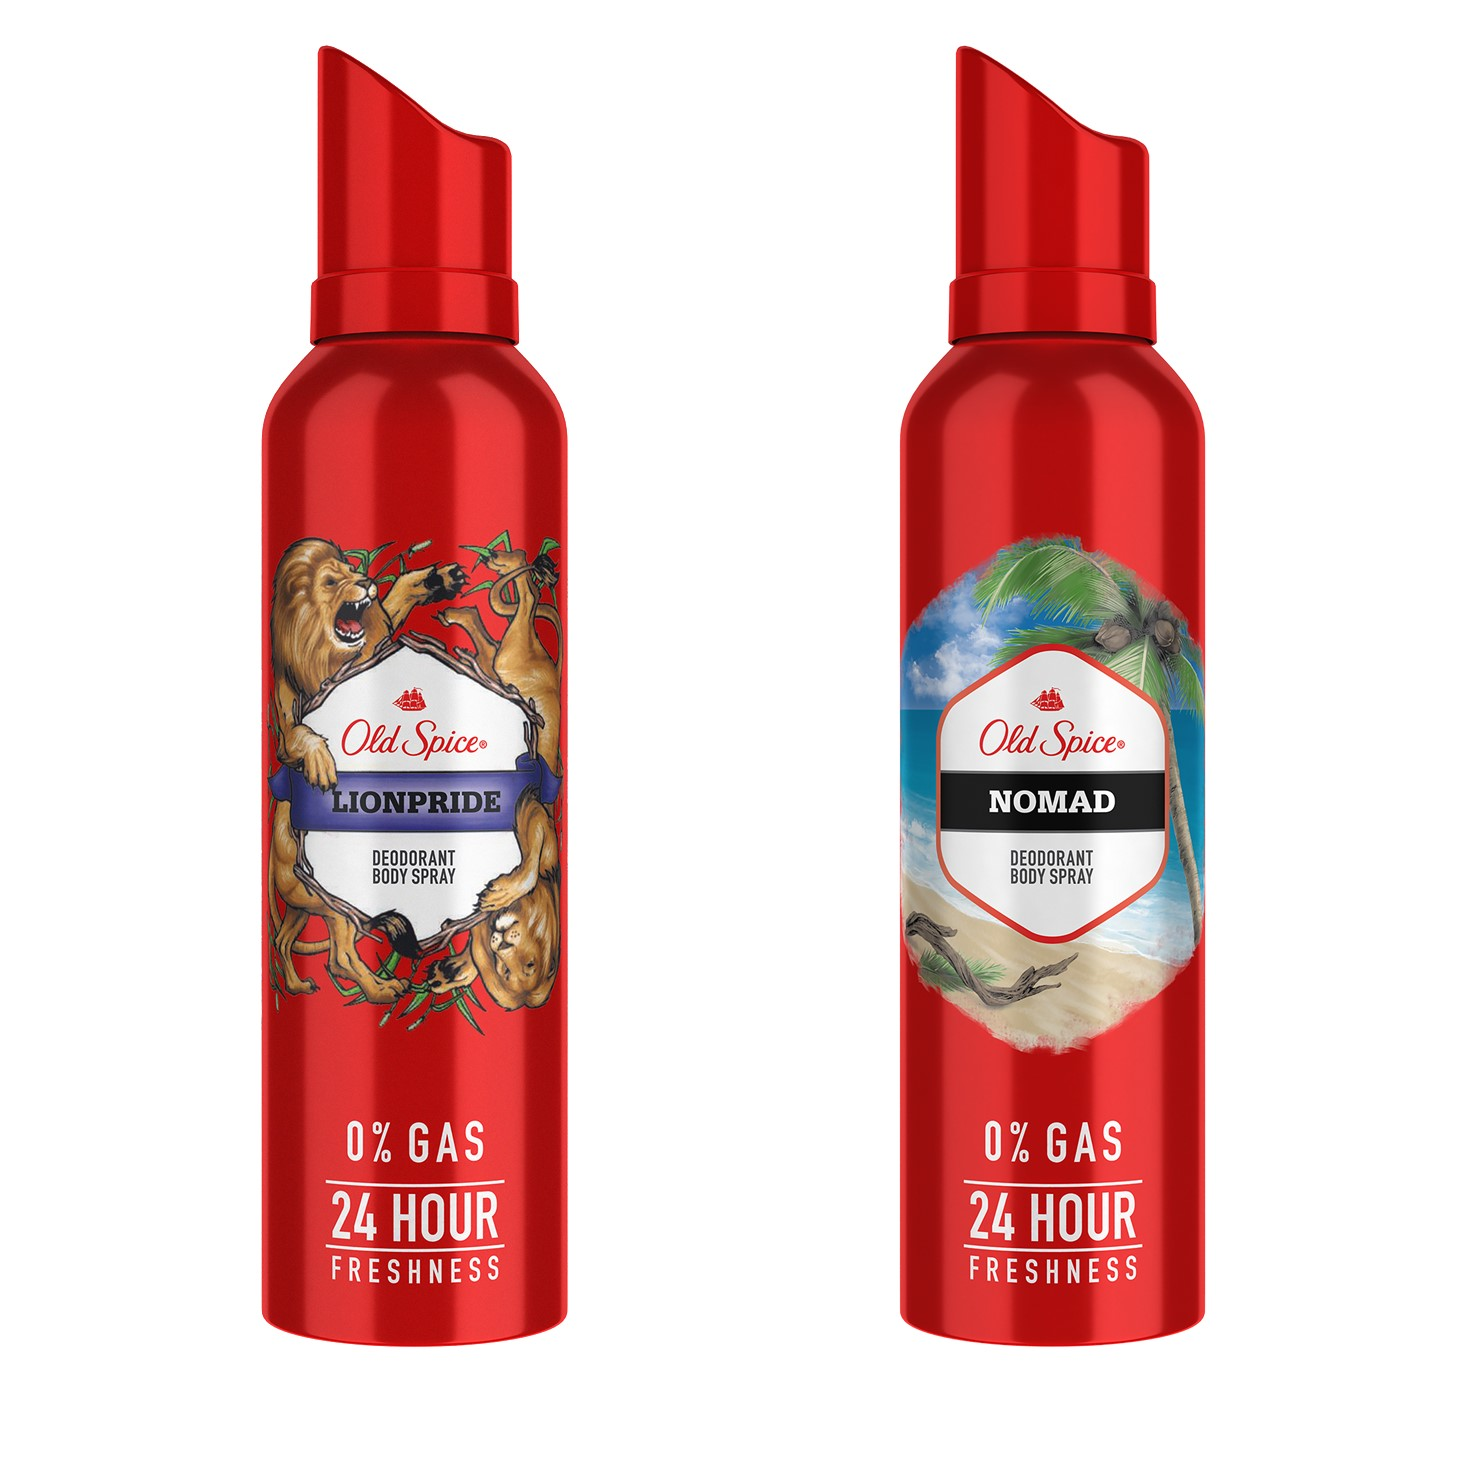 Old Spice Lionpride and Nomad Deodorant Body Spray, 140 ml each